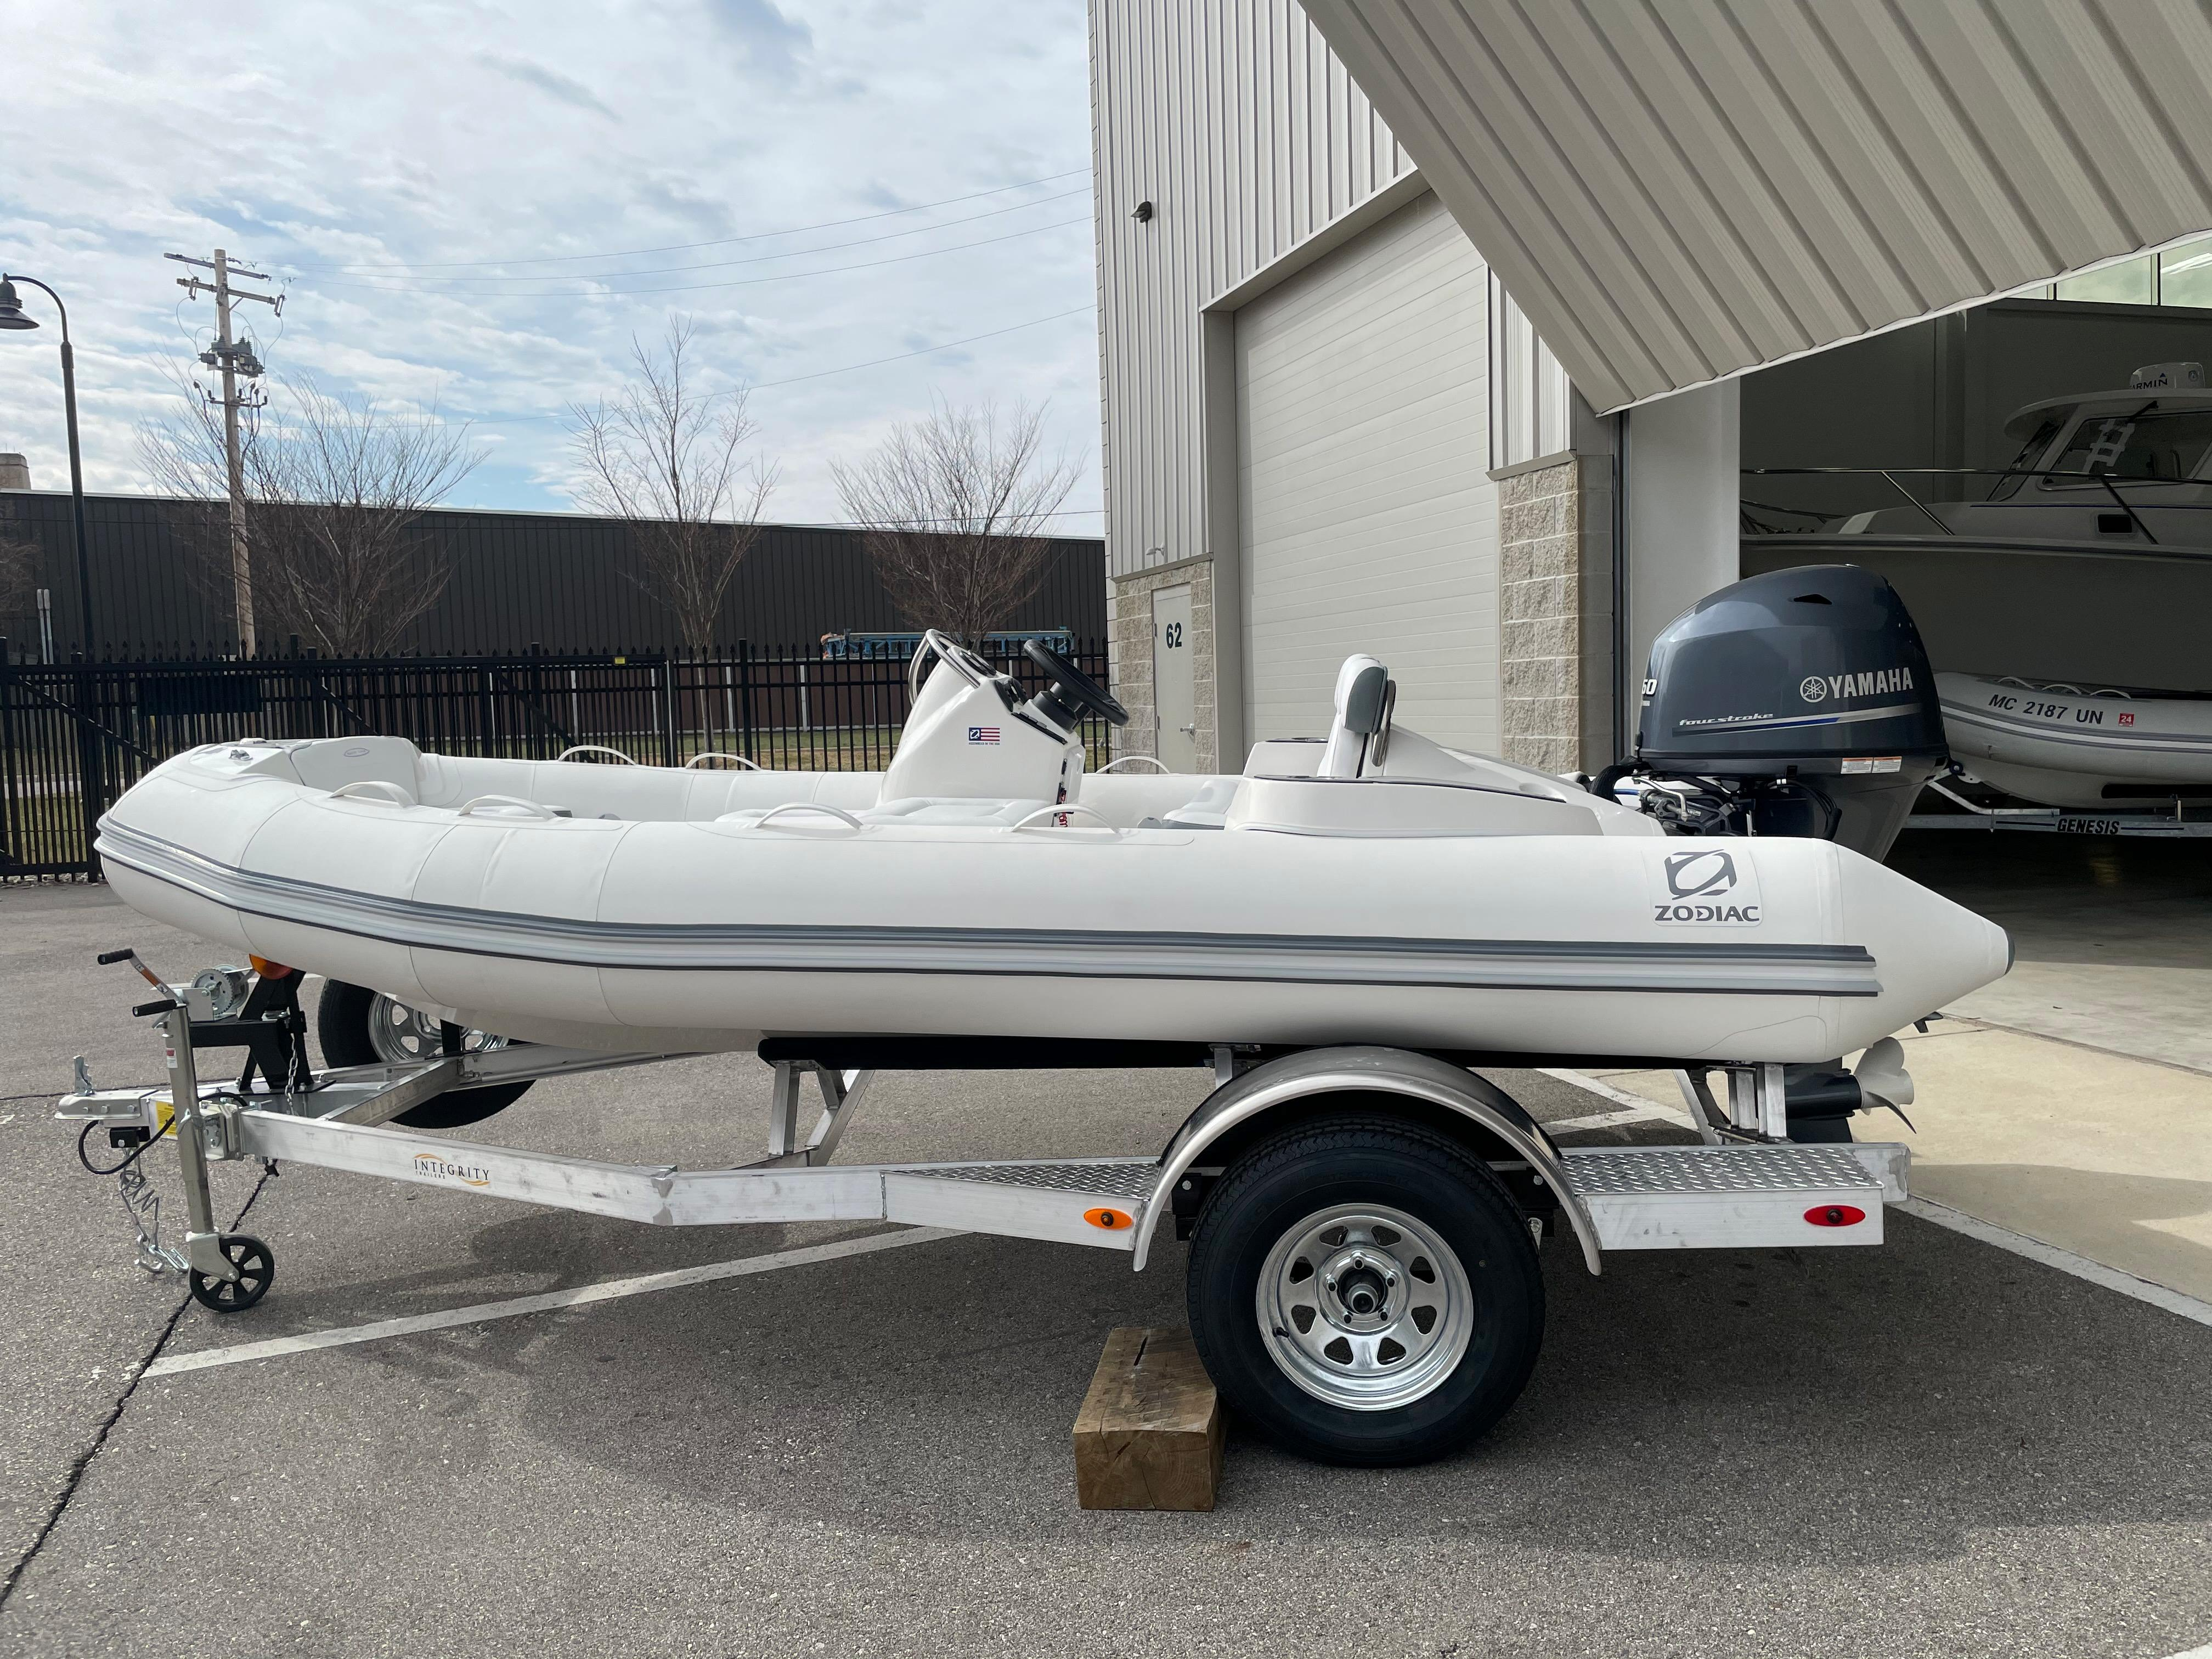 2022 Zodiac Yachtline 440 Deluxe NEO GL Edition 60hp On Order, Image 1